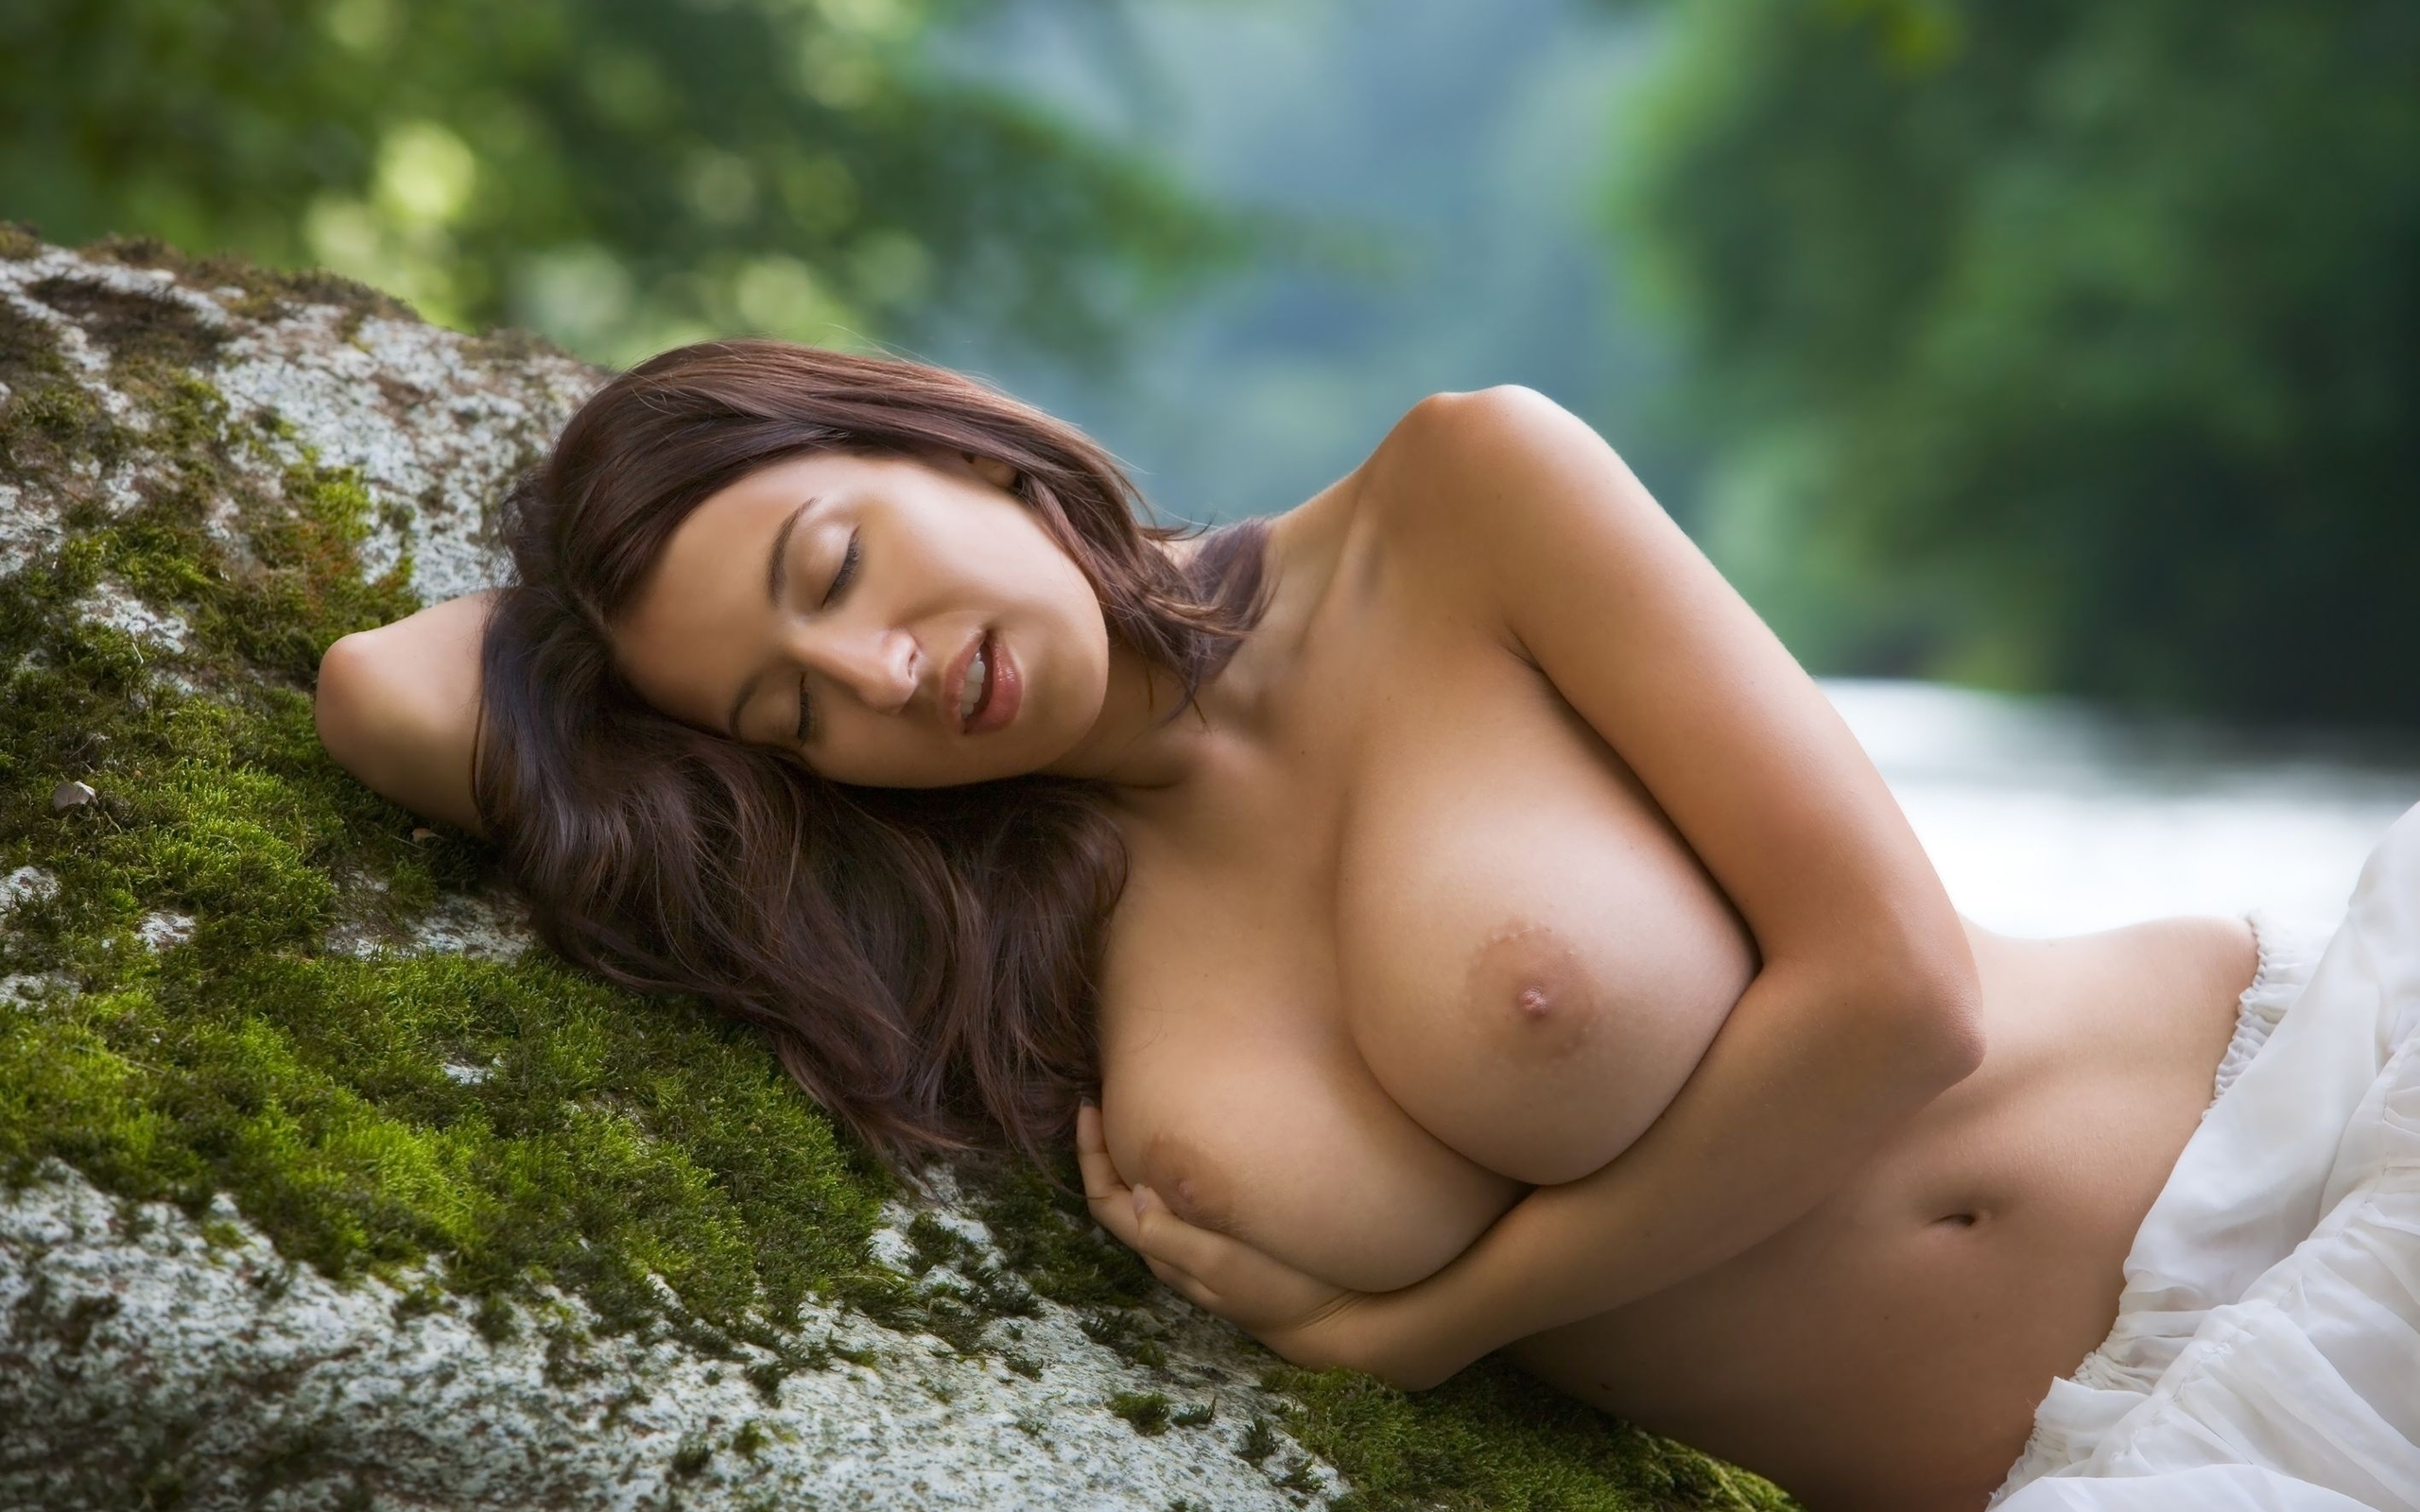 Womans big boobs nude 12